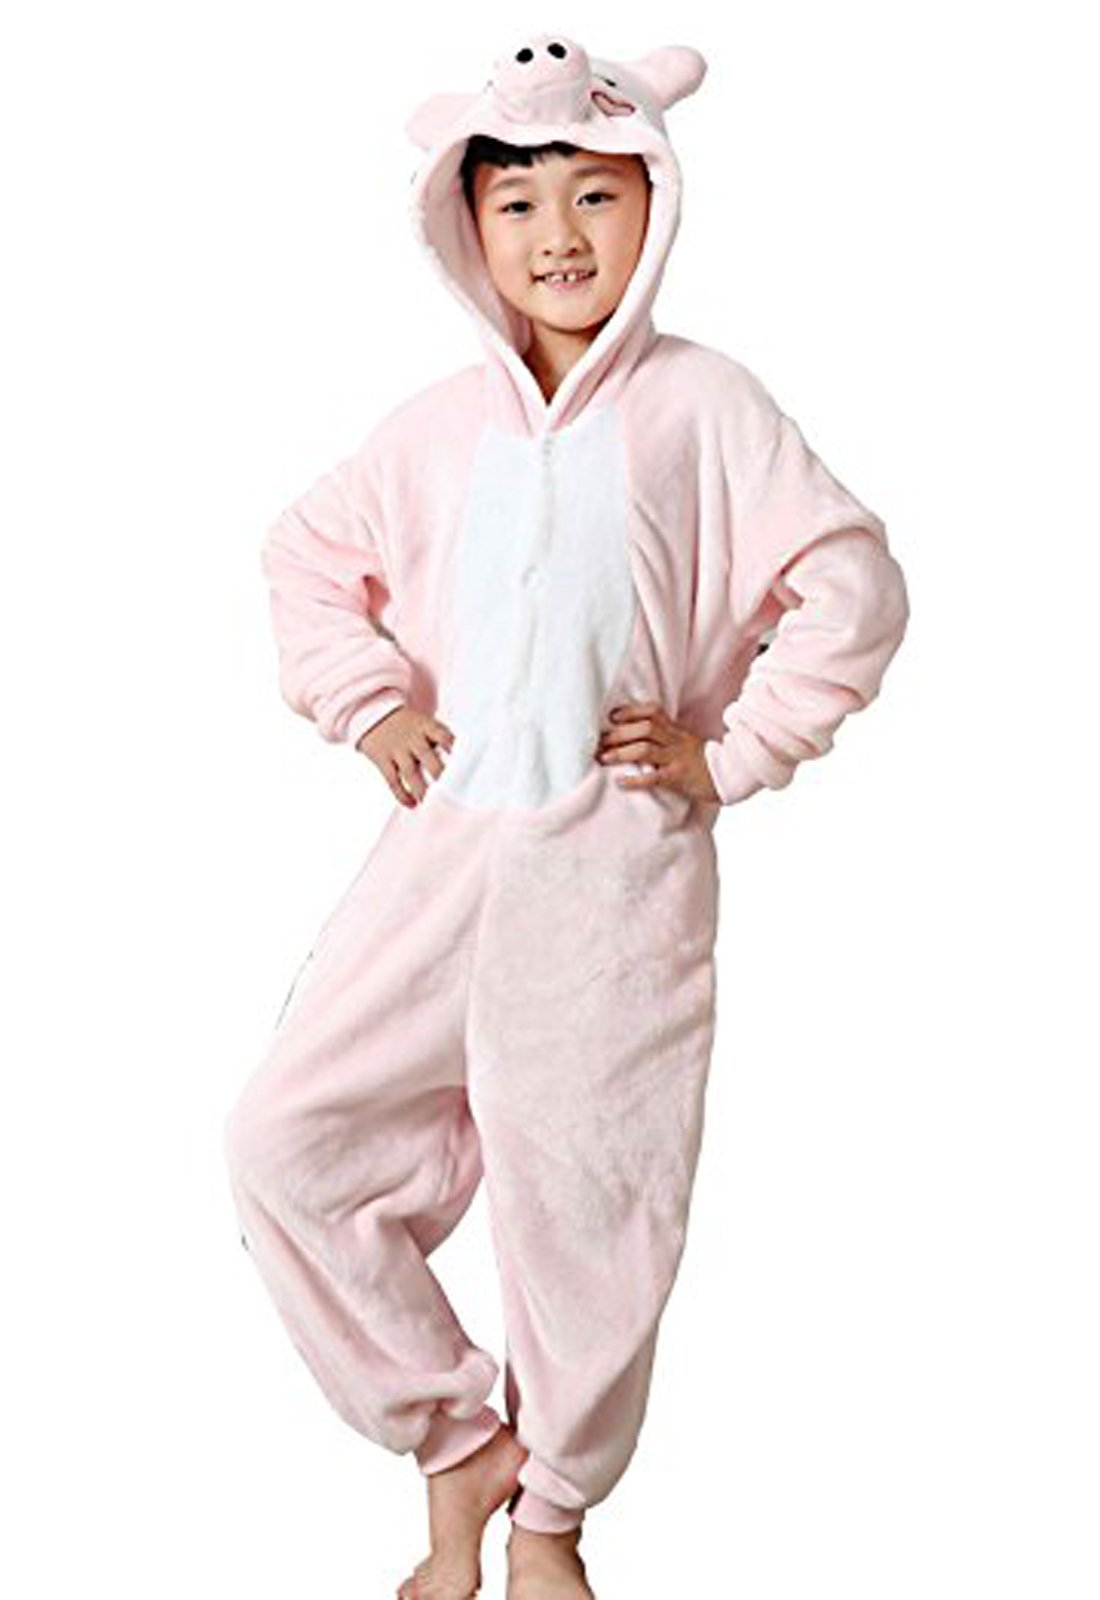 Eamaott Flannel Children Pig Cosplay Costume Christmas Onesie Pajamas Great Gift For Kids 95